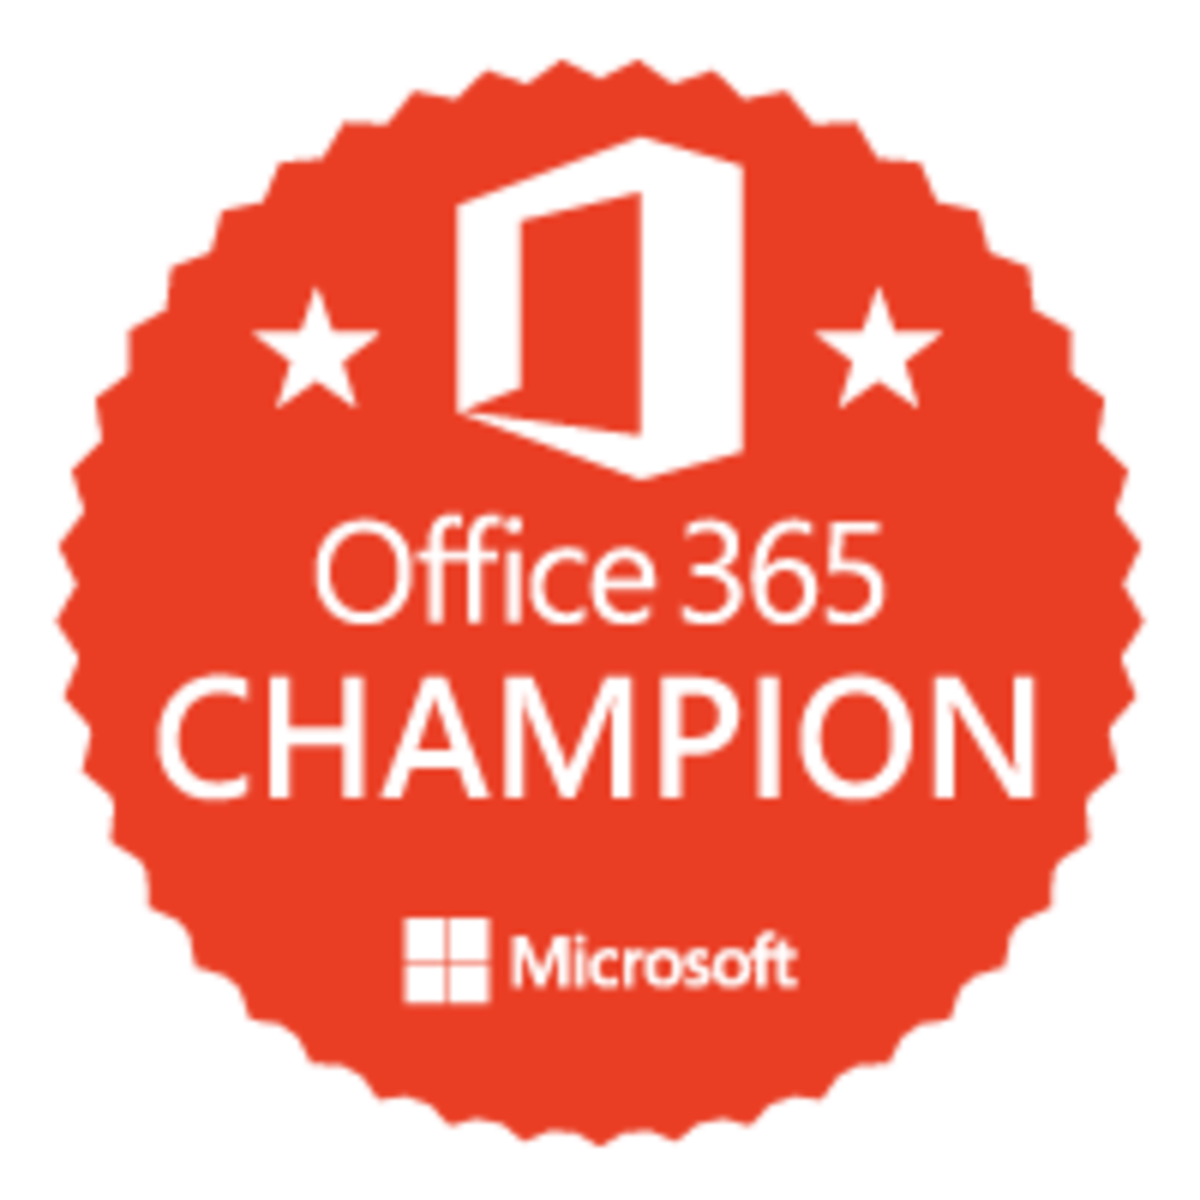 #officeChamps